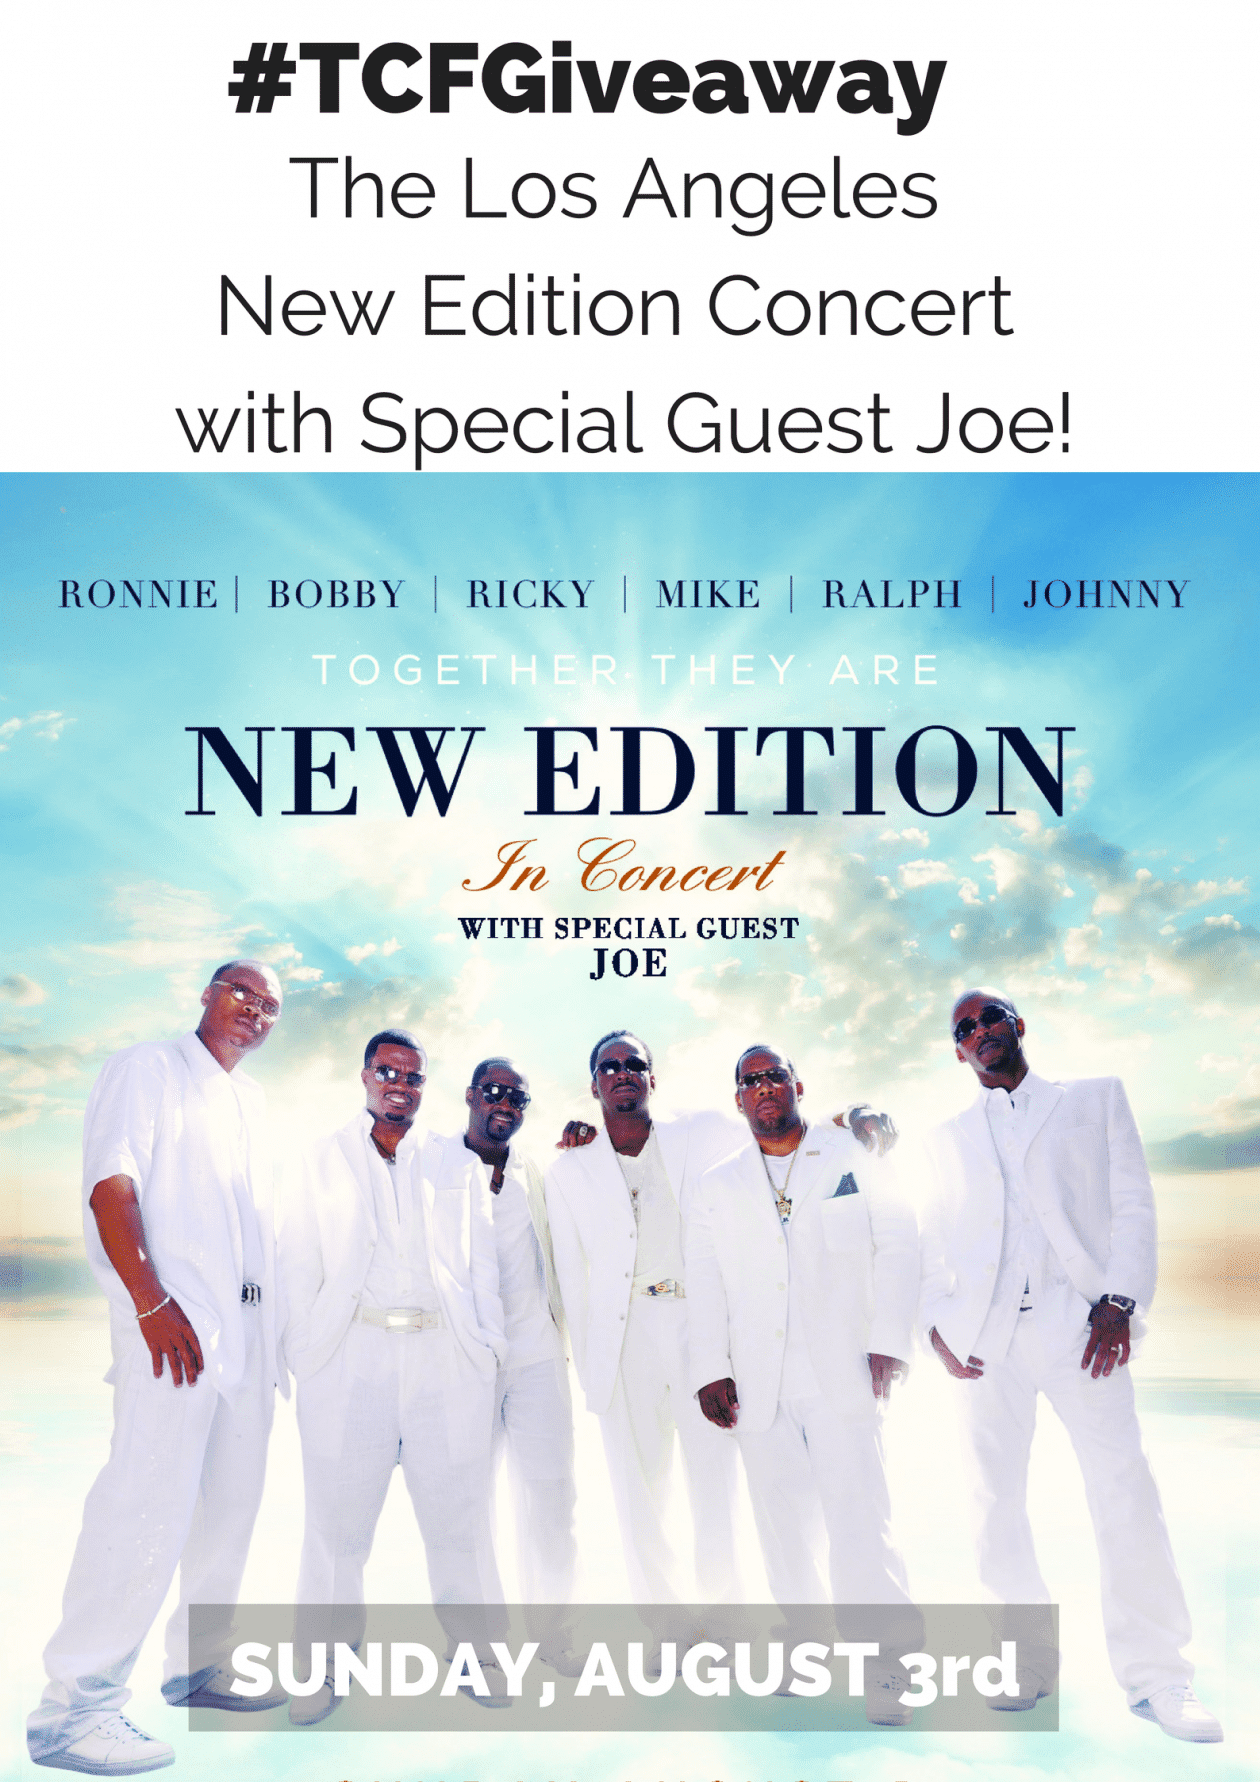 The Los Angeles New Edition Concert with Special Guest Joe